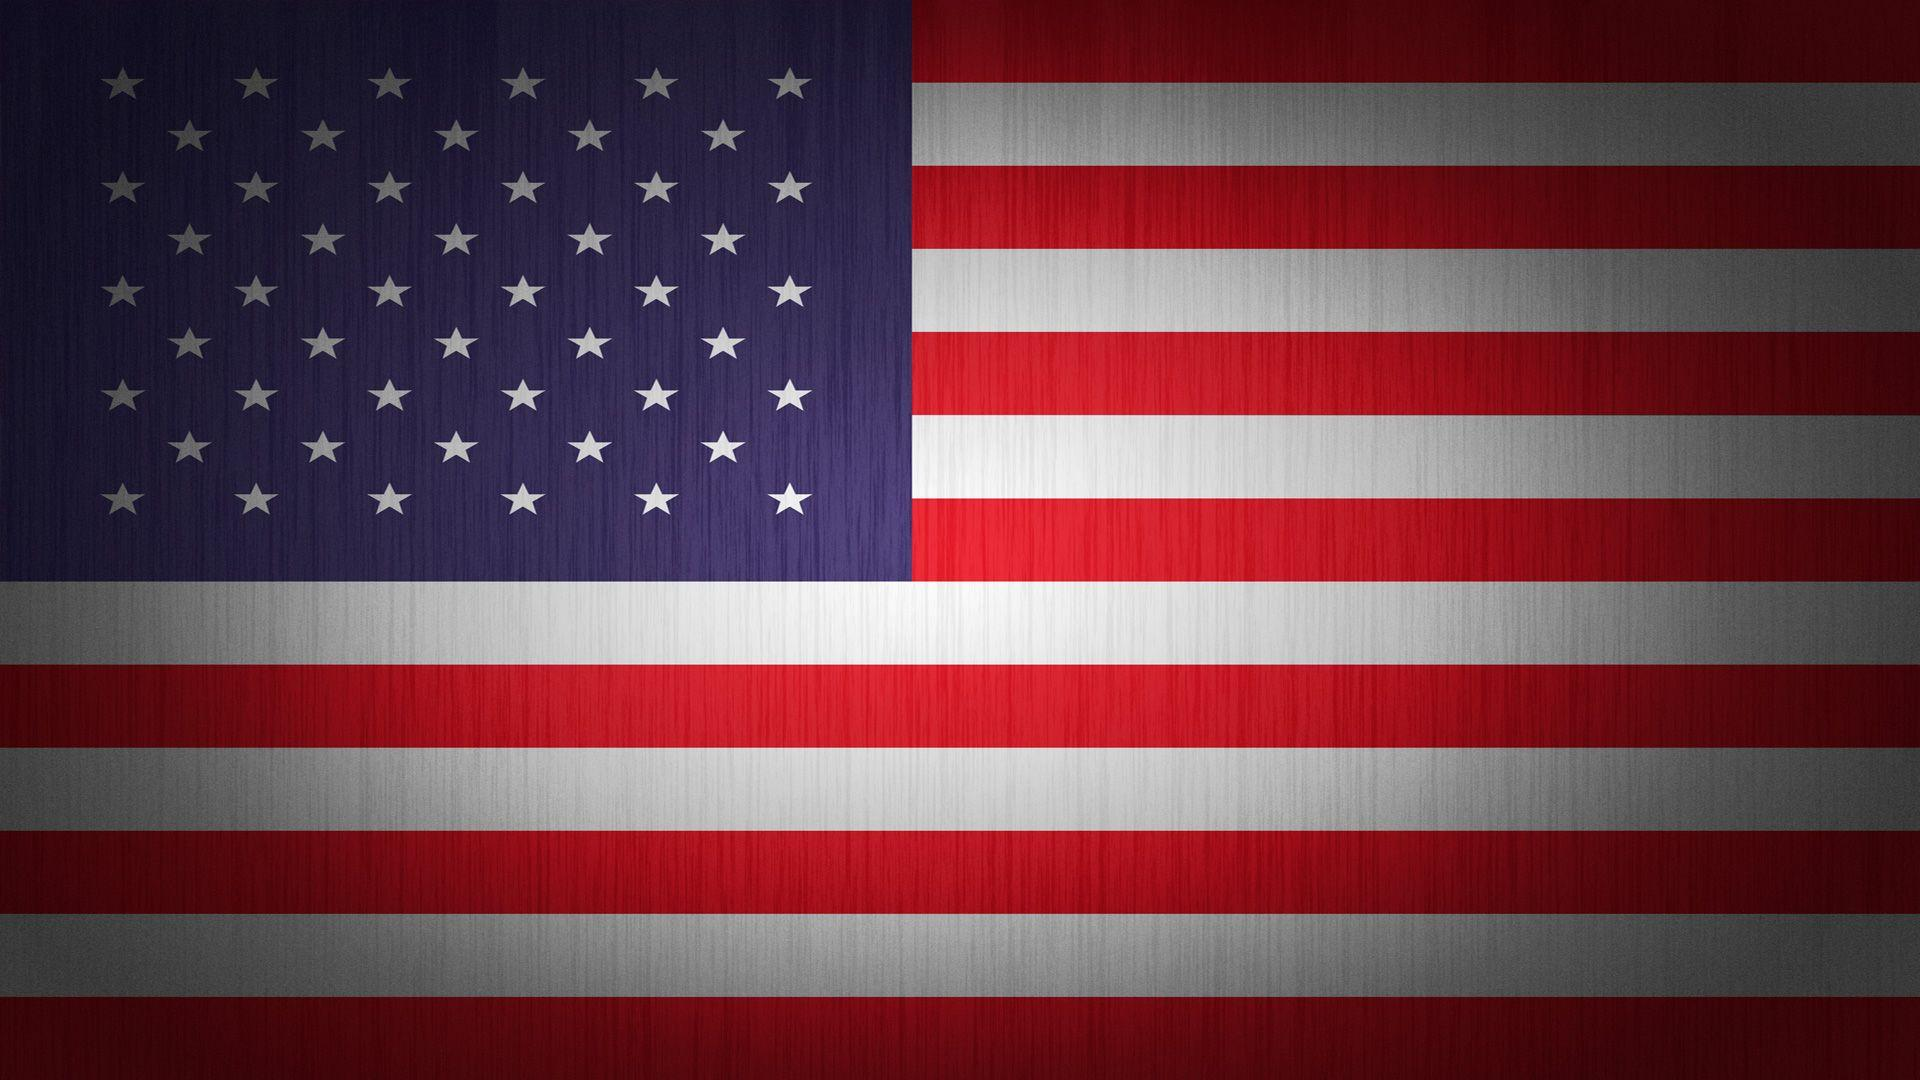 Flag Desktop Background: American Flag Wallpapers